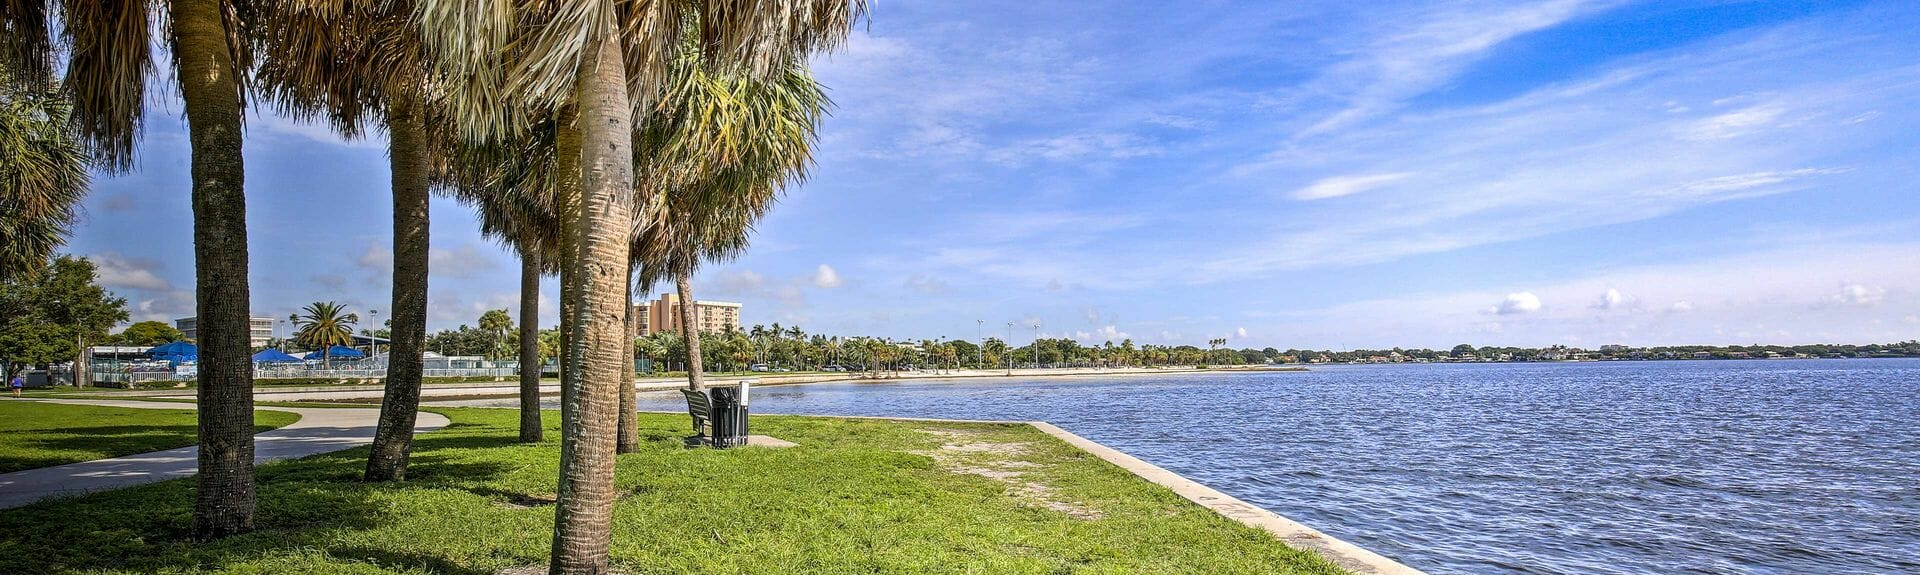 Pinellas Park Home Inspections